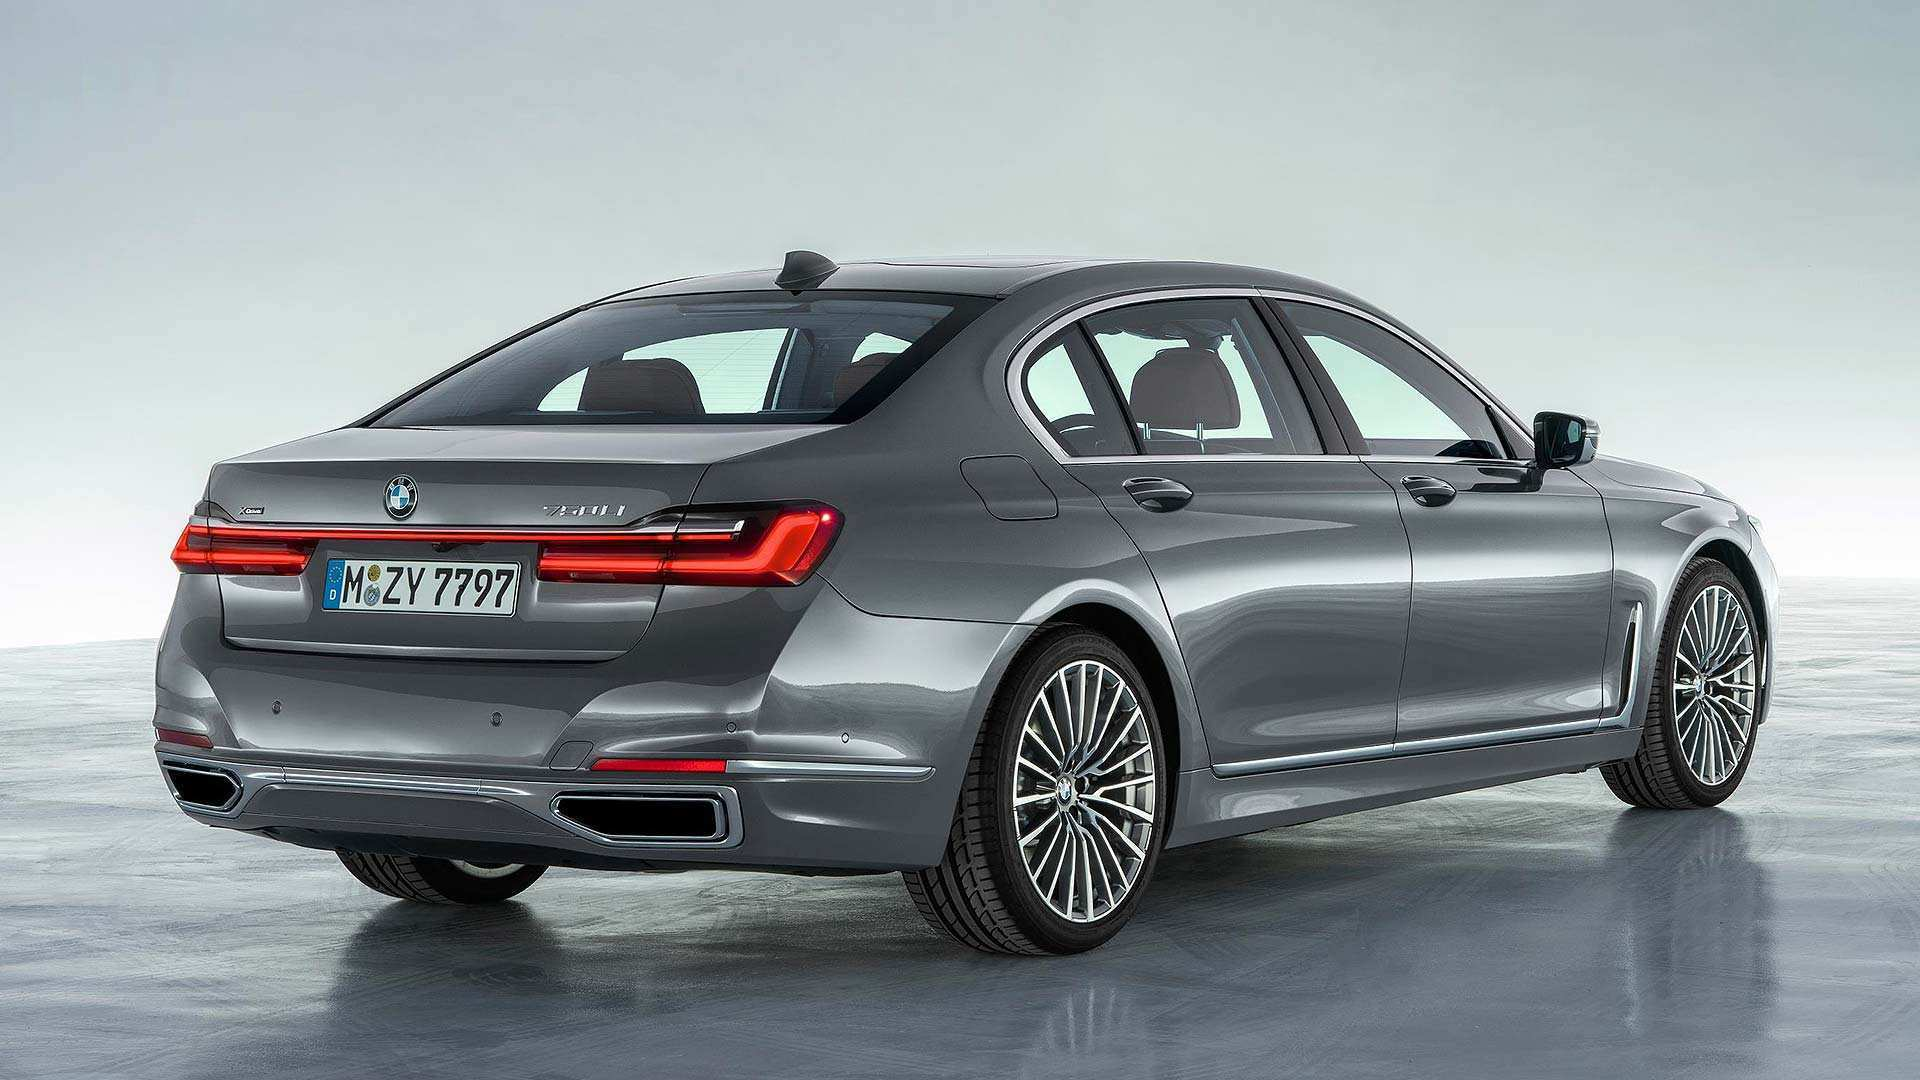 73 All New 2019 Bmw 7 Series Lci Ratings with 2019 Bmw 7 Series Lci